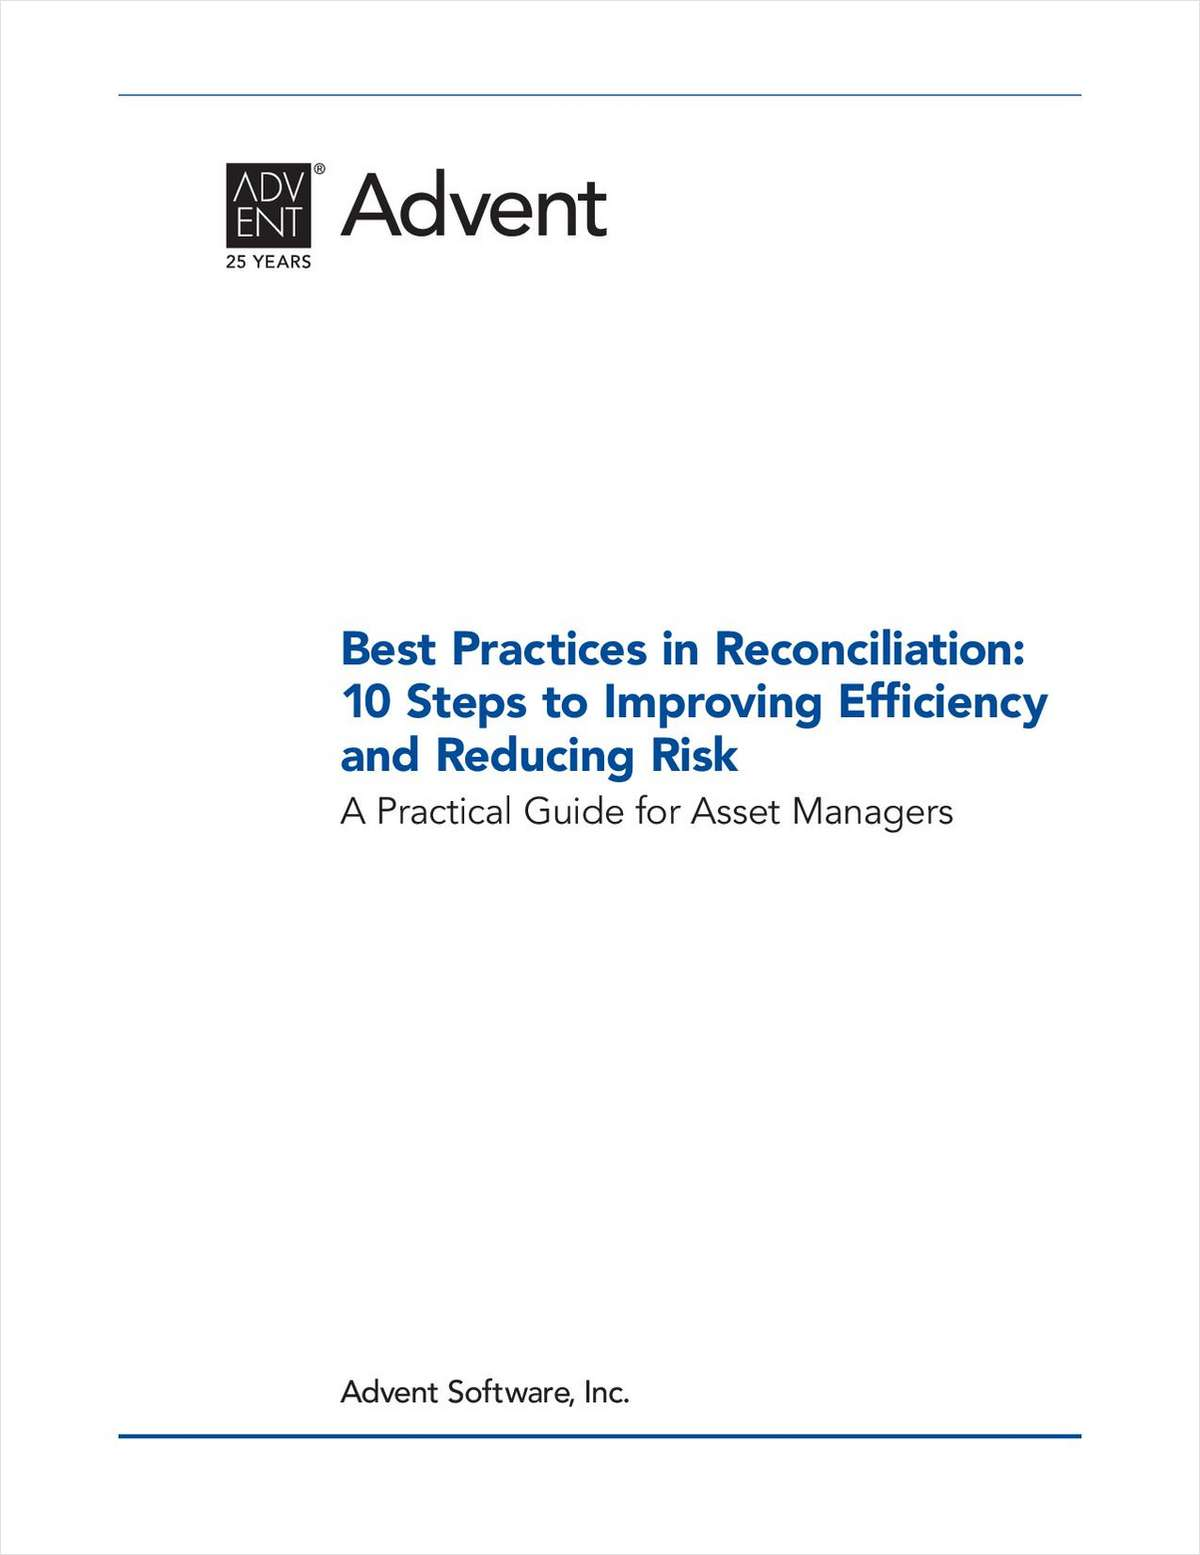 Best Practices in Reconciliation: 10 Steps to Improving Efficiency and Reducing Risk